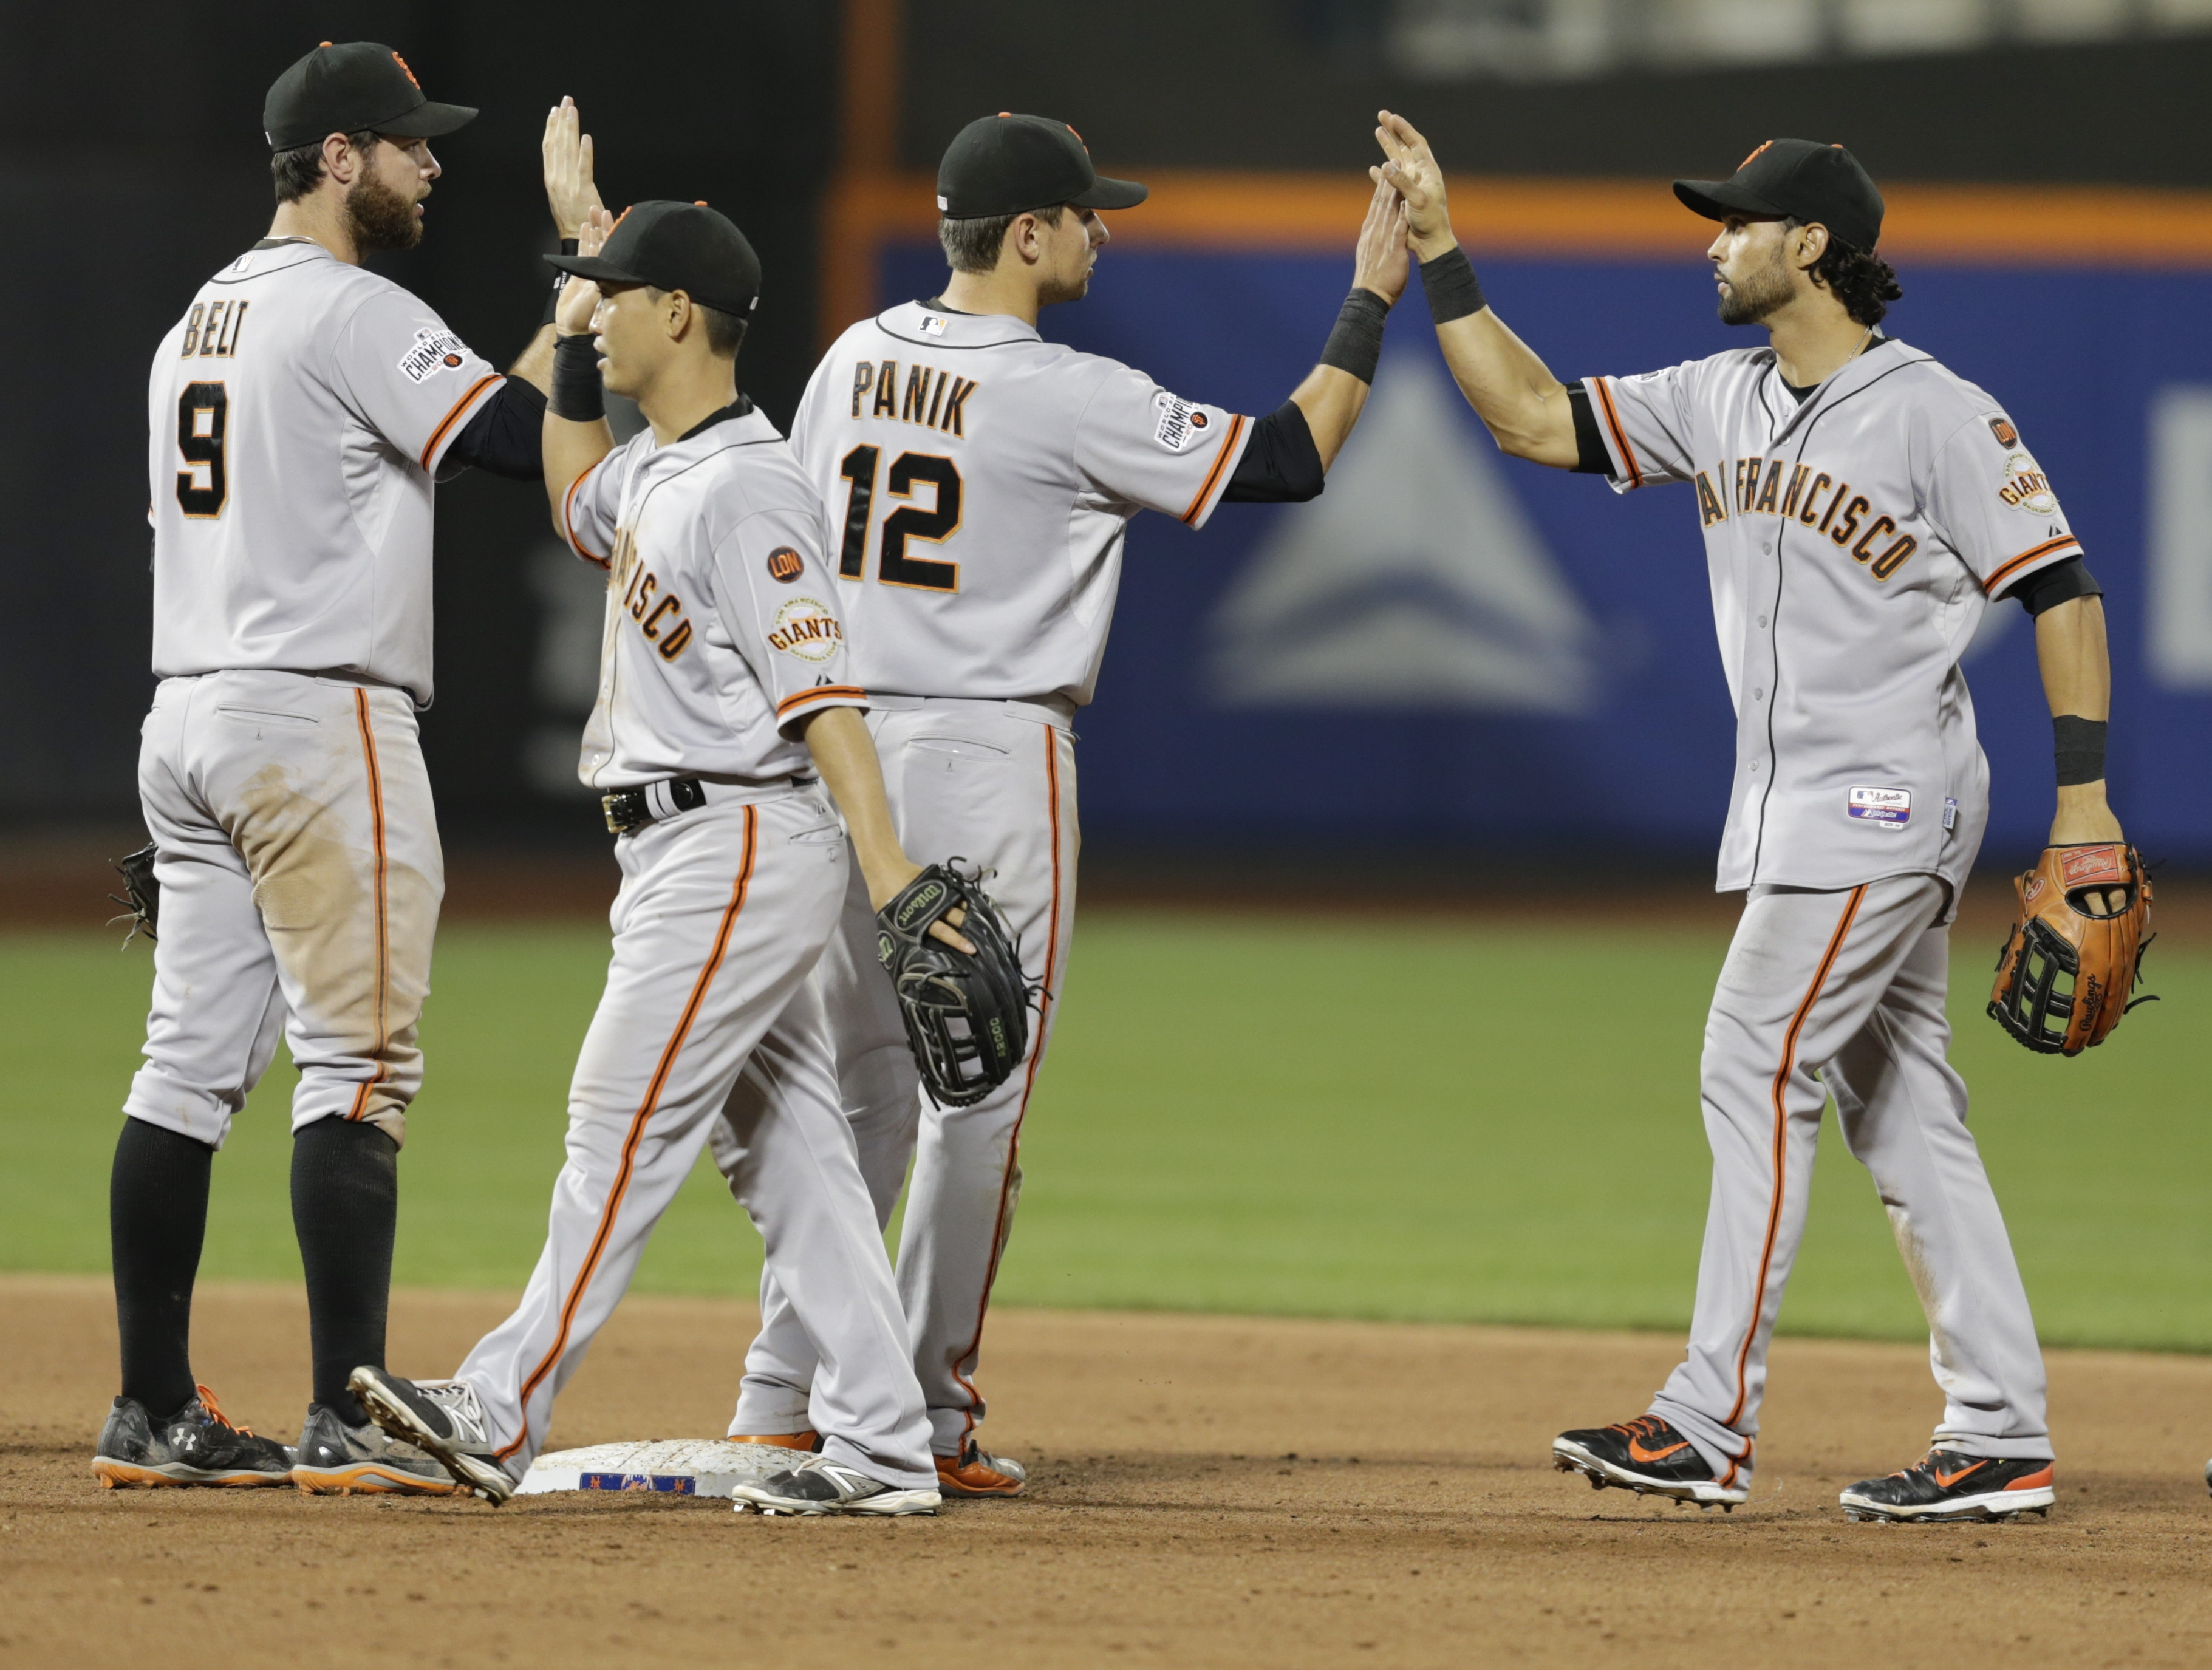 San Francisco Giants' Brandon Belt, Nori Aoki, Joe Panik and Angel Pagan, from left, celebrate after a baseball game against the New York Mets on Wednesday, June 10, 2015, in New York. The Giants won 8-5. (AP Photo/Frank Franklin II)